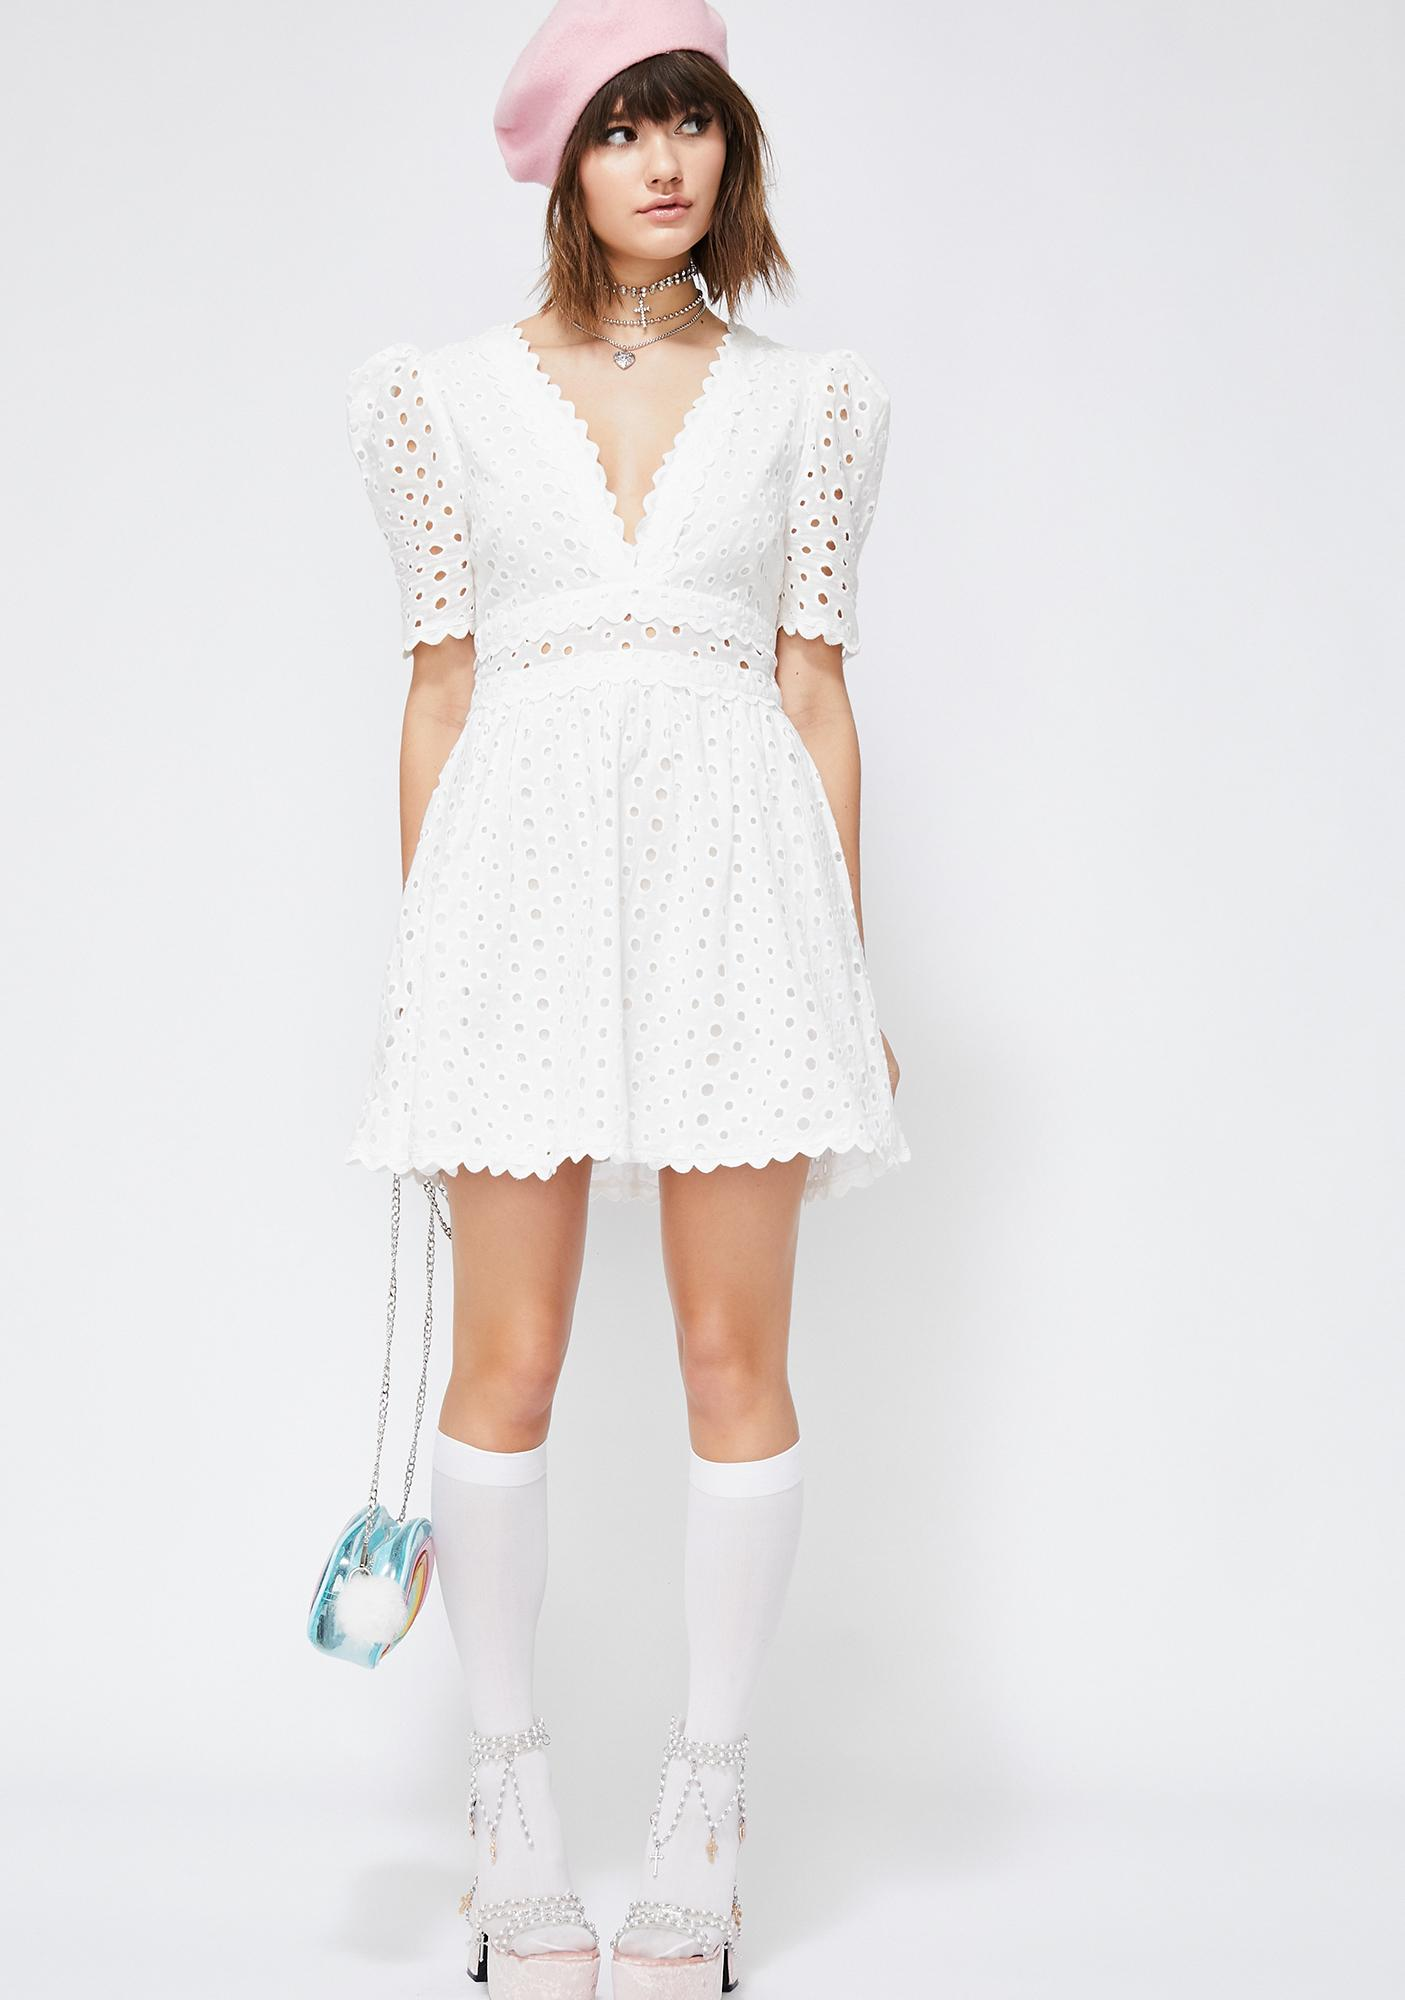 Iced Bubble Pop Electric Mini Dress